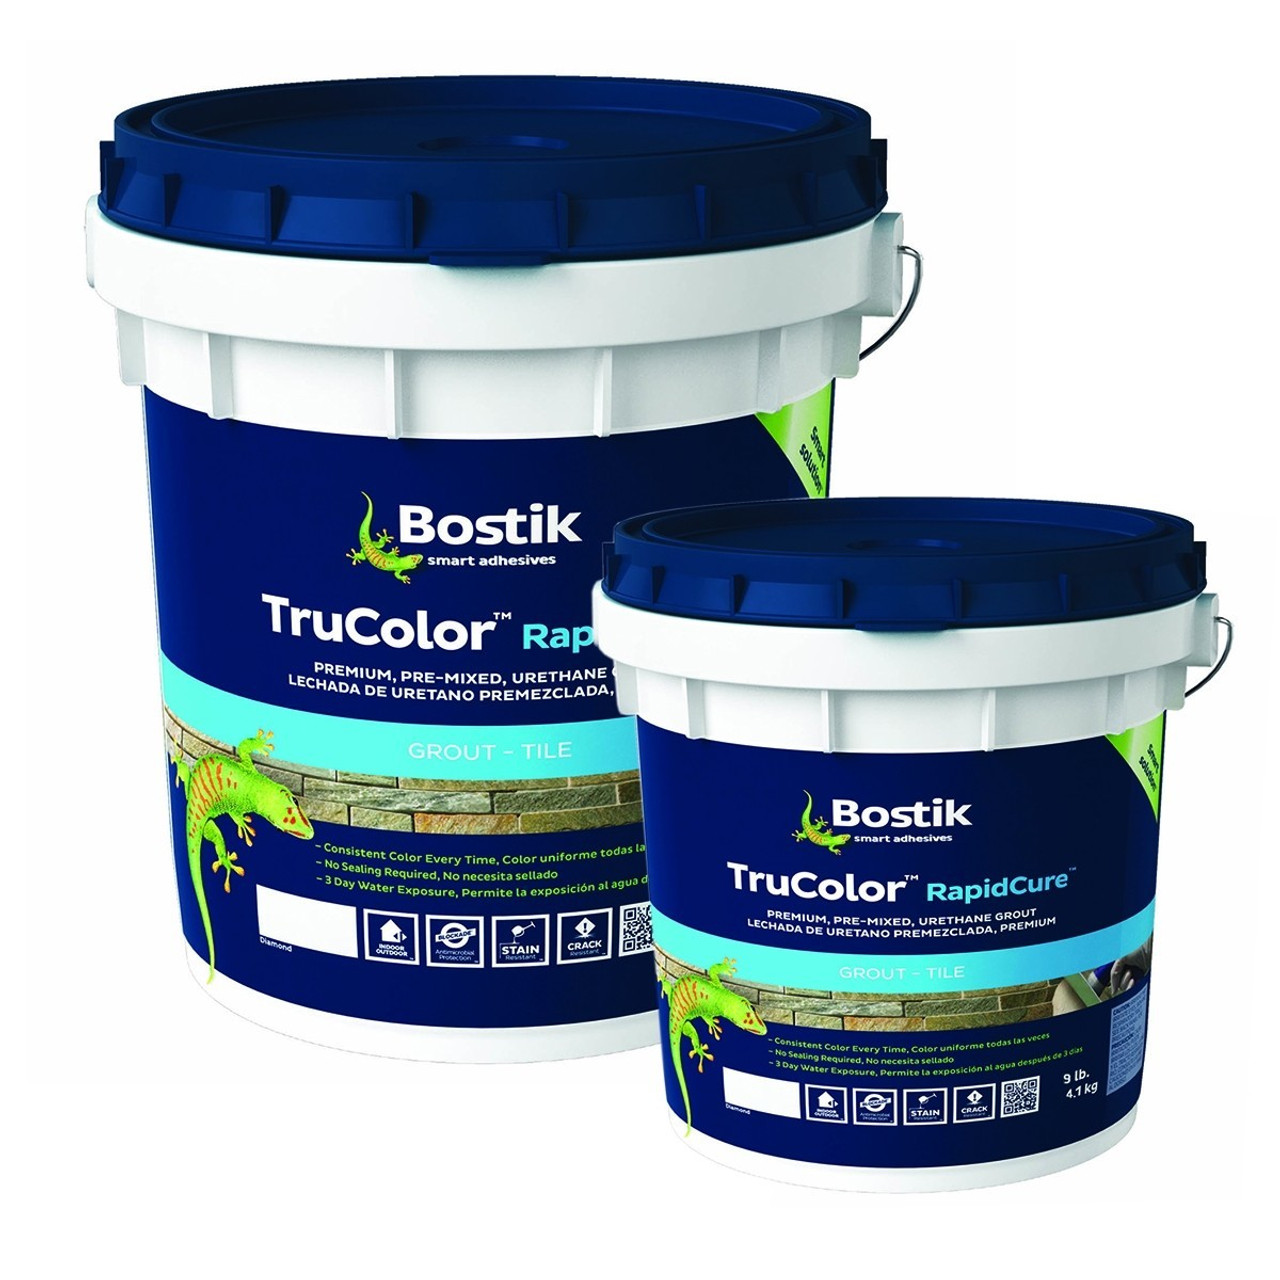 Bostik Grout & Thinsets